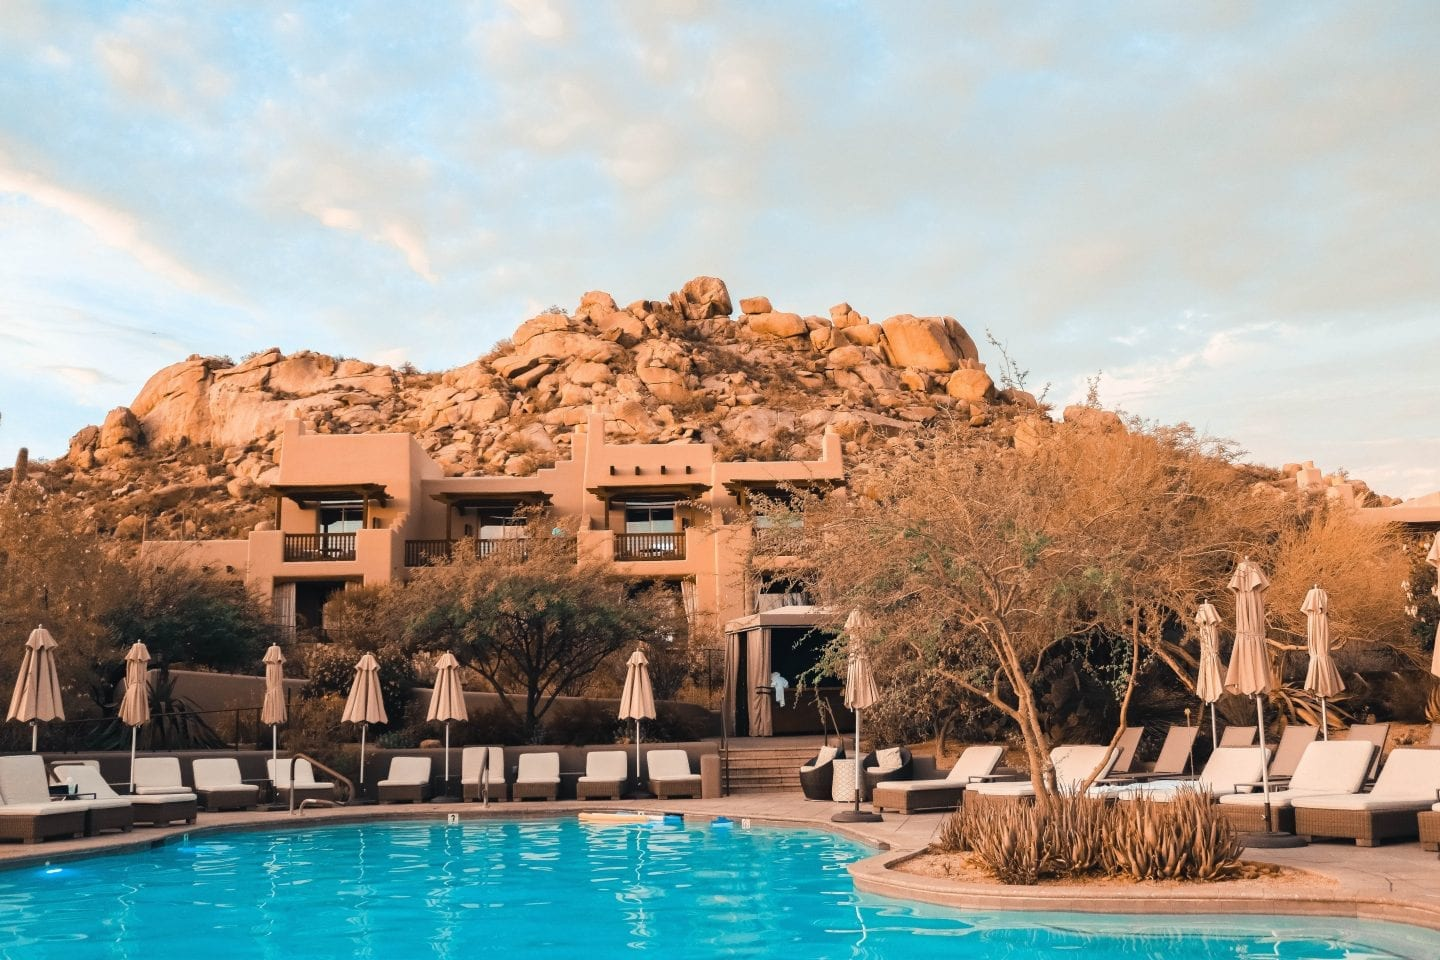 Where To Stay In Scottsdale: Desert Luxury At The Four Seasons